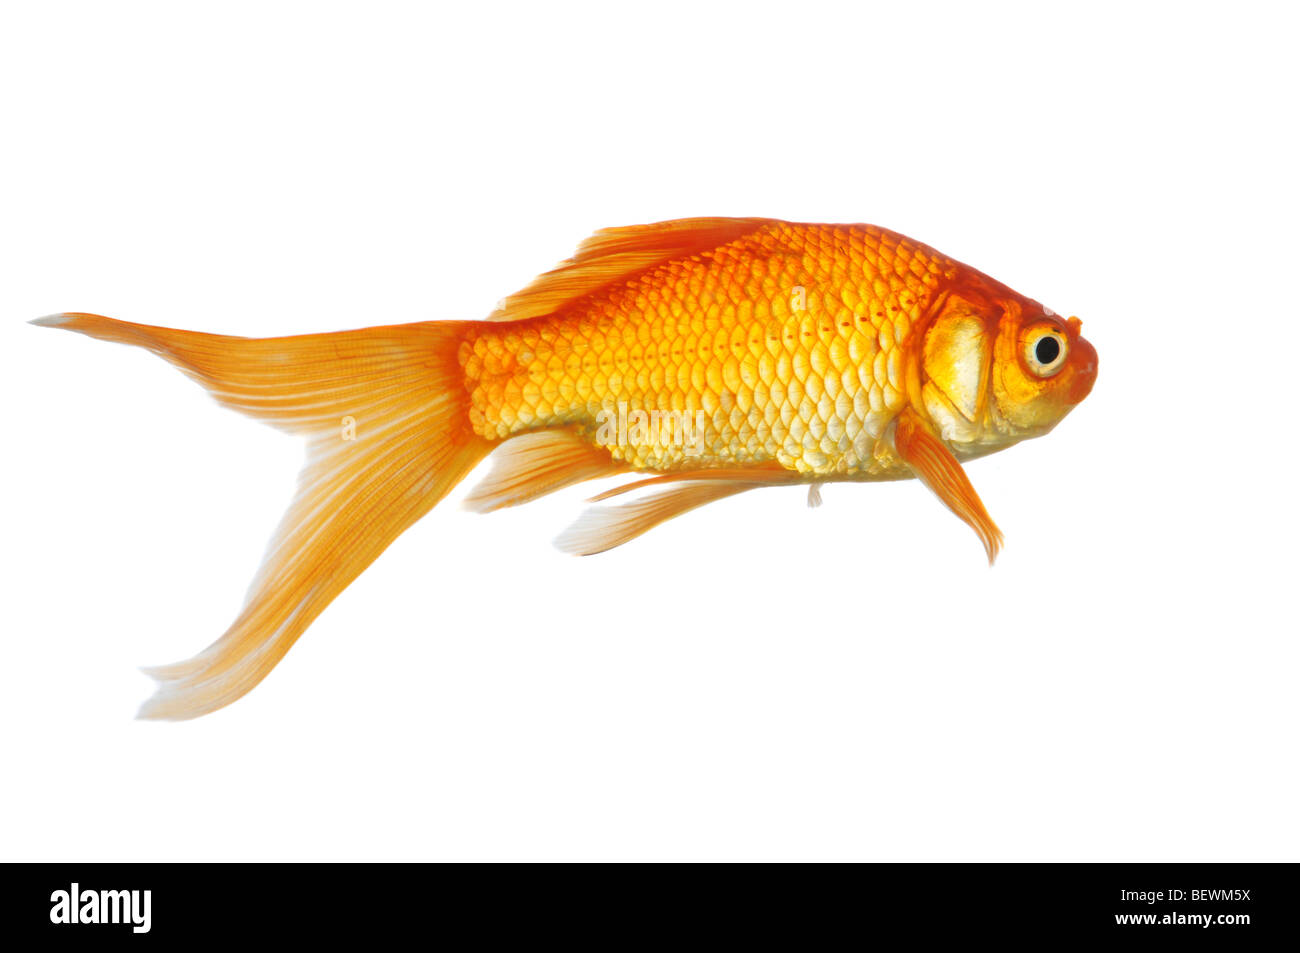 Gold fish swimming isolated on a white background stock for Image of fish